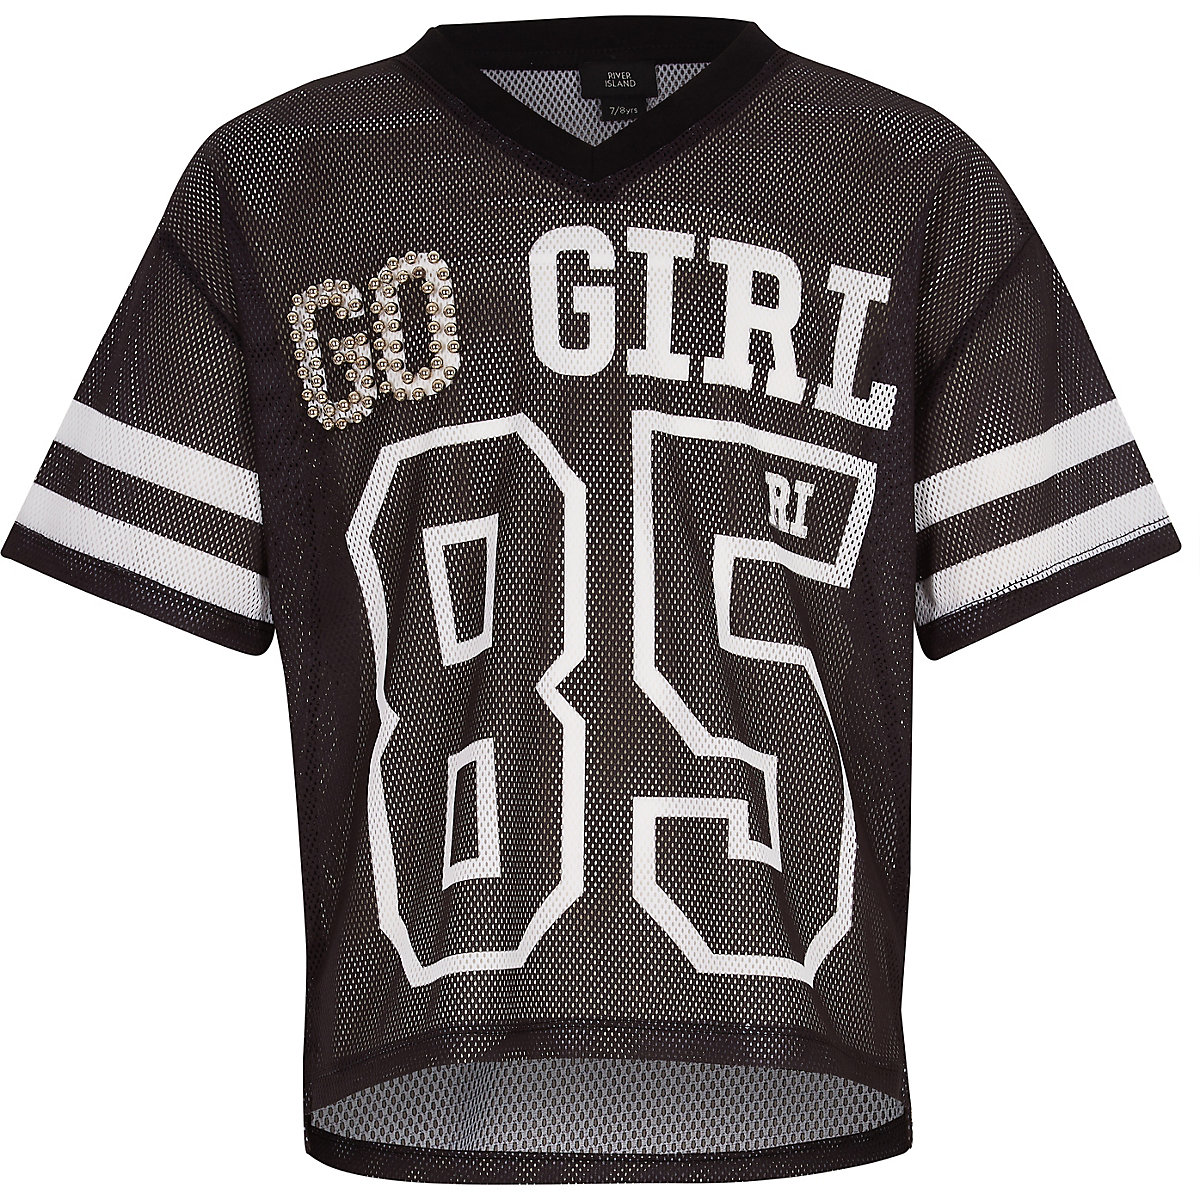 Girls RI Active black 'go girl' mesh T-shirt